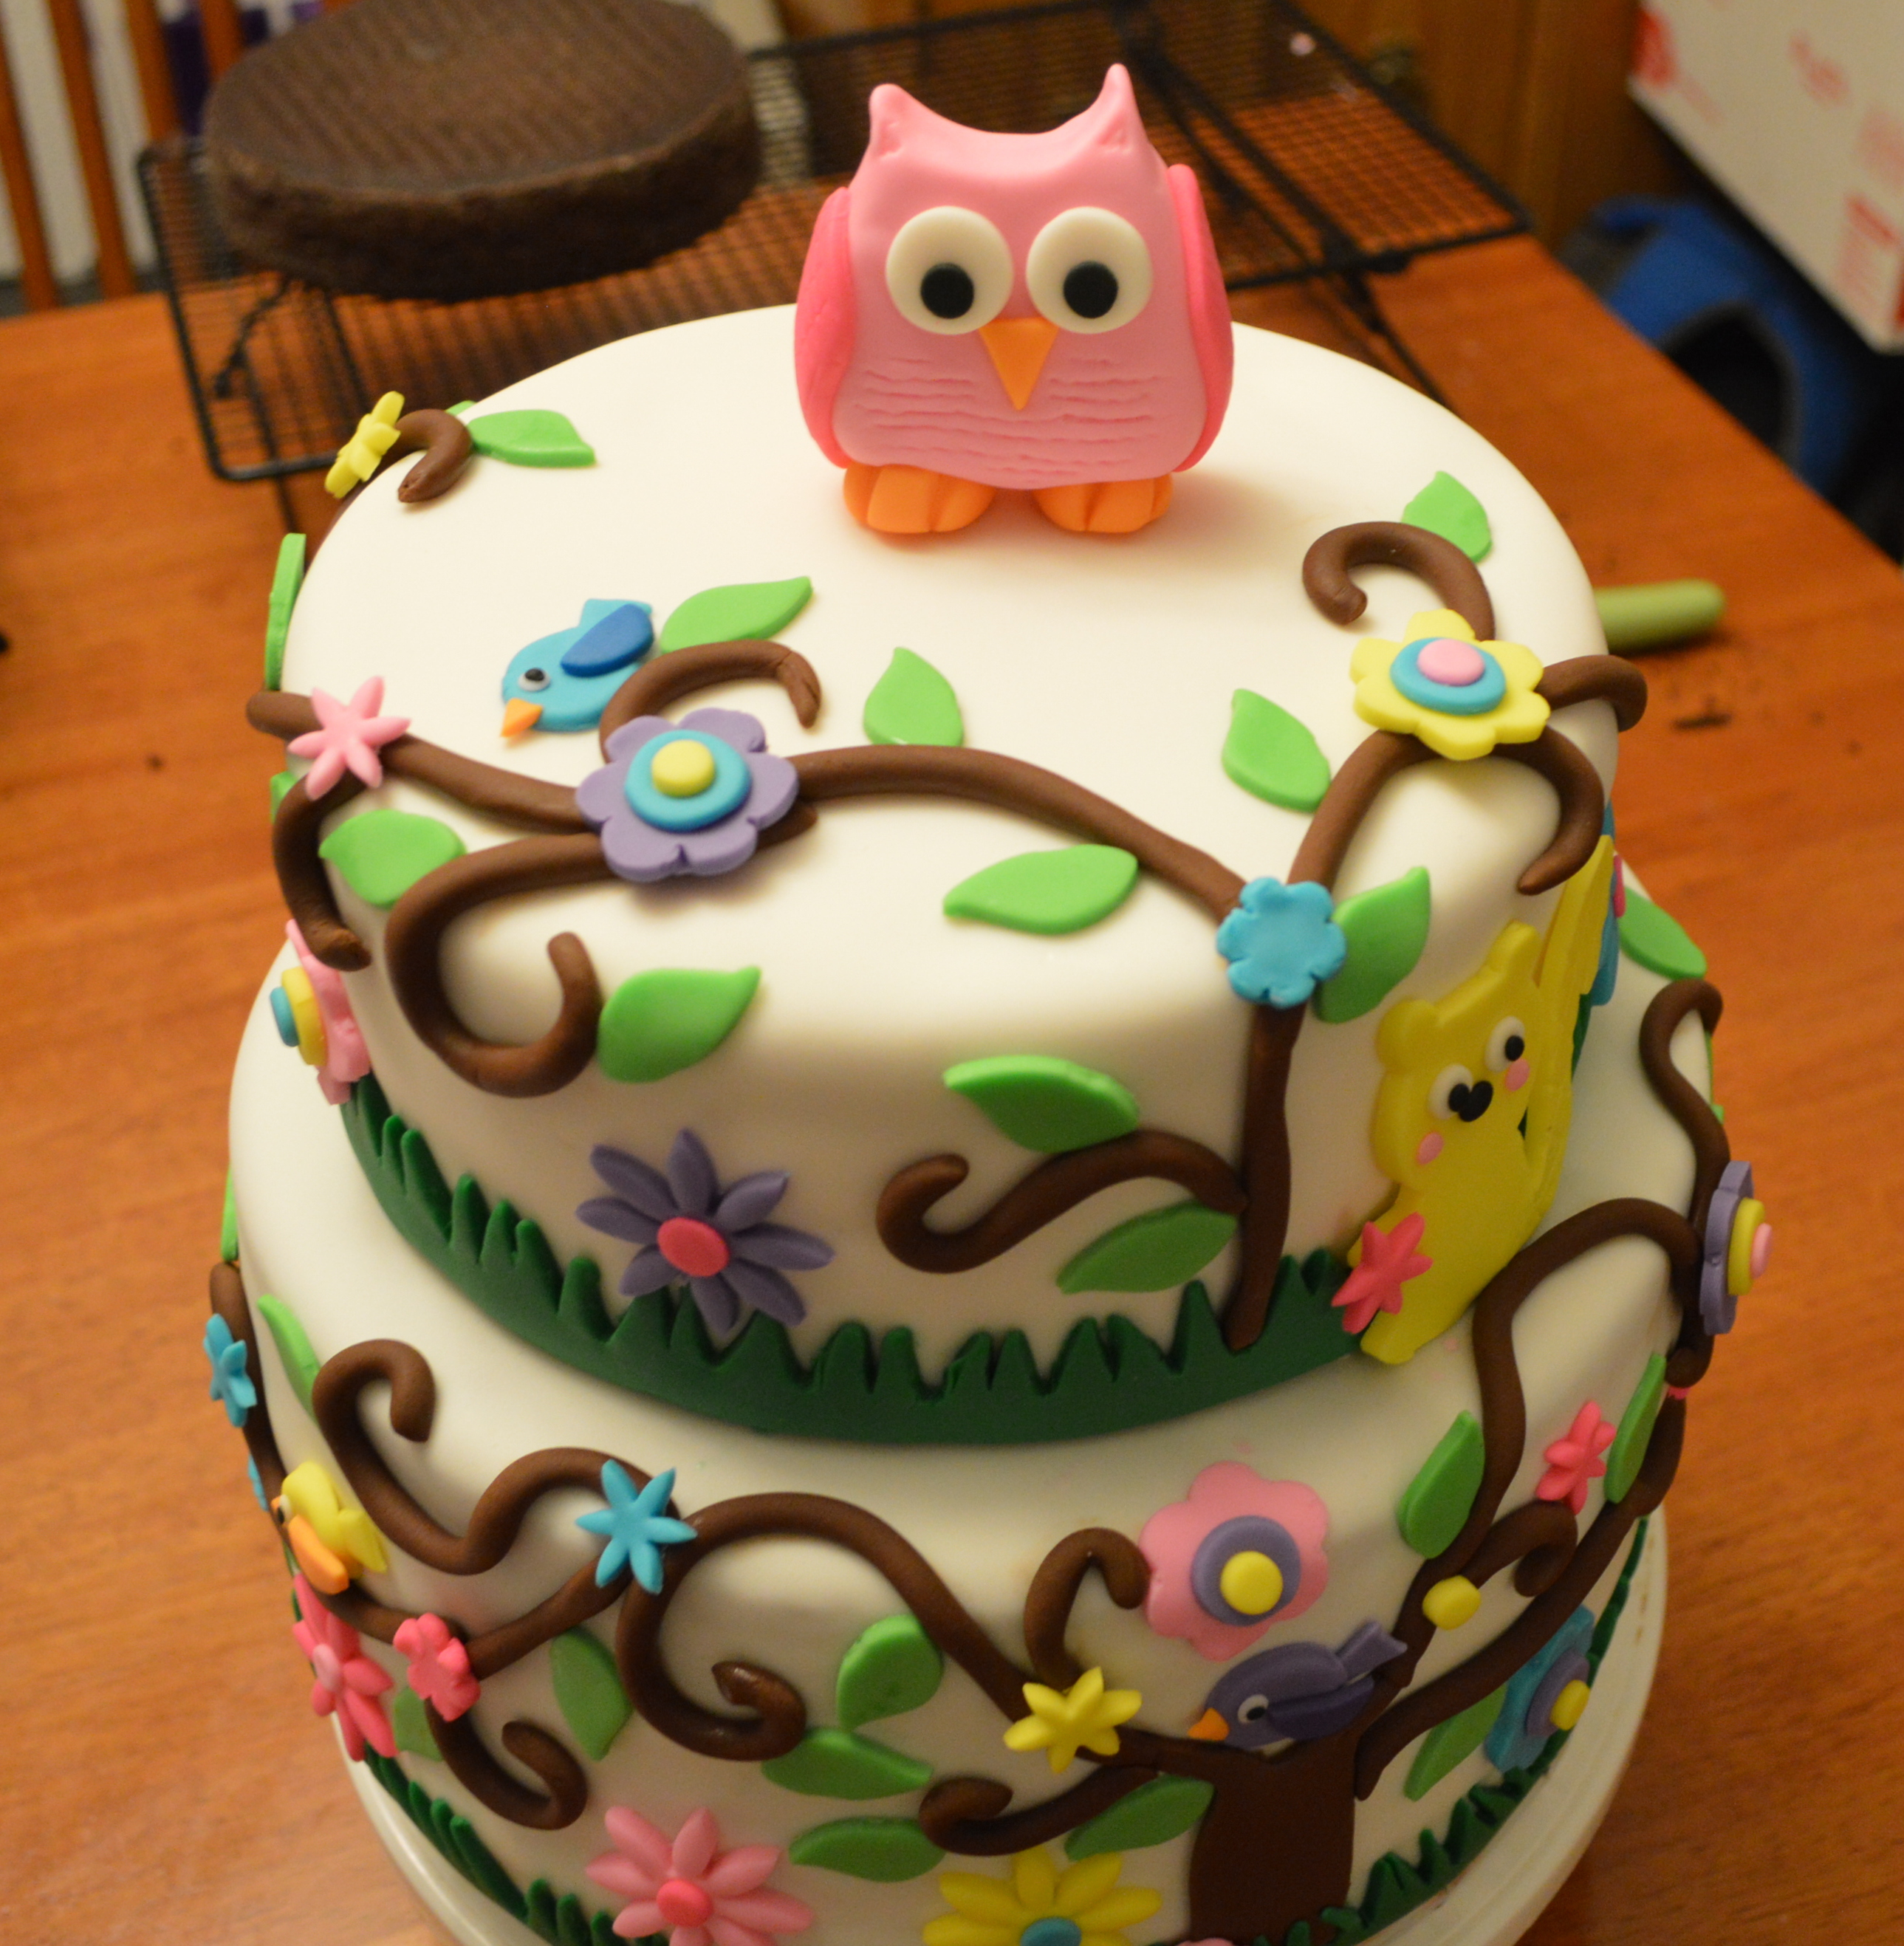 Phenomenal Owl Birthday Cakes A Little Of This And A Little Of That Funny Birthday Cards Online Alyptdamsfinfo